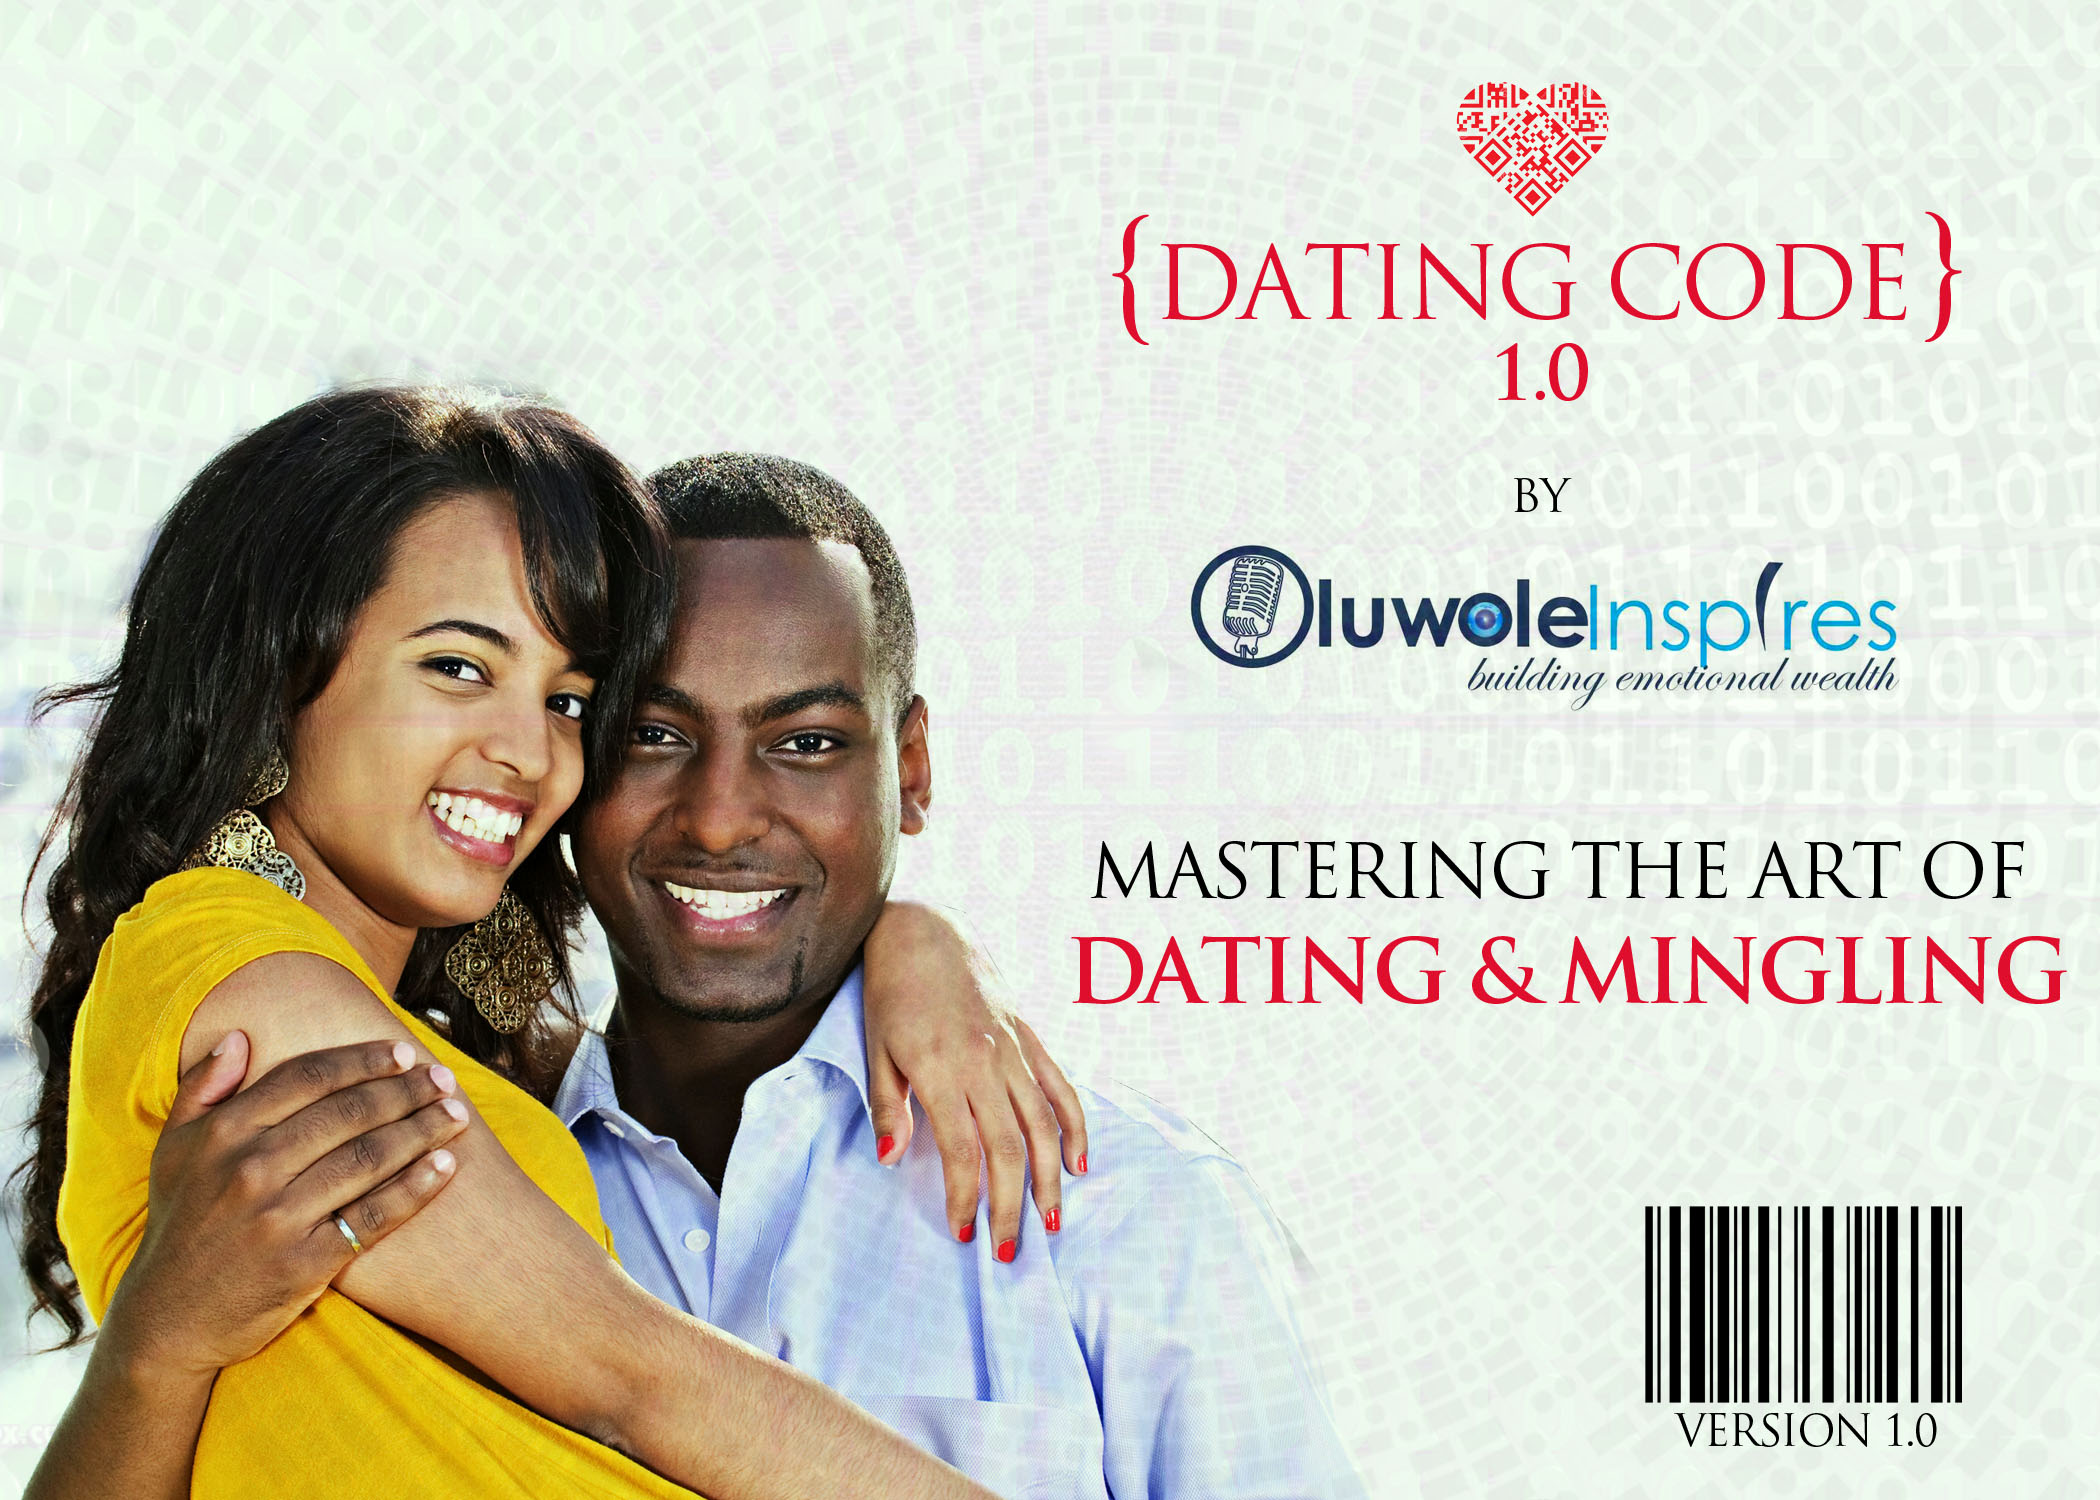 Millions search online dating sites